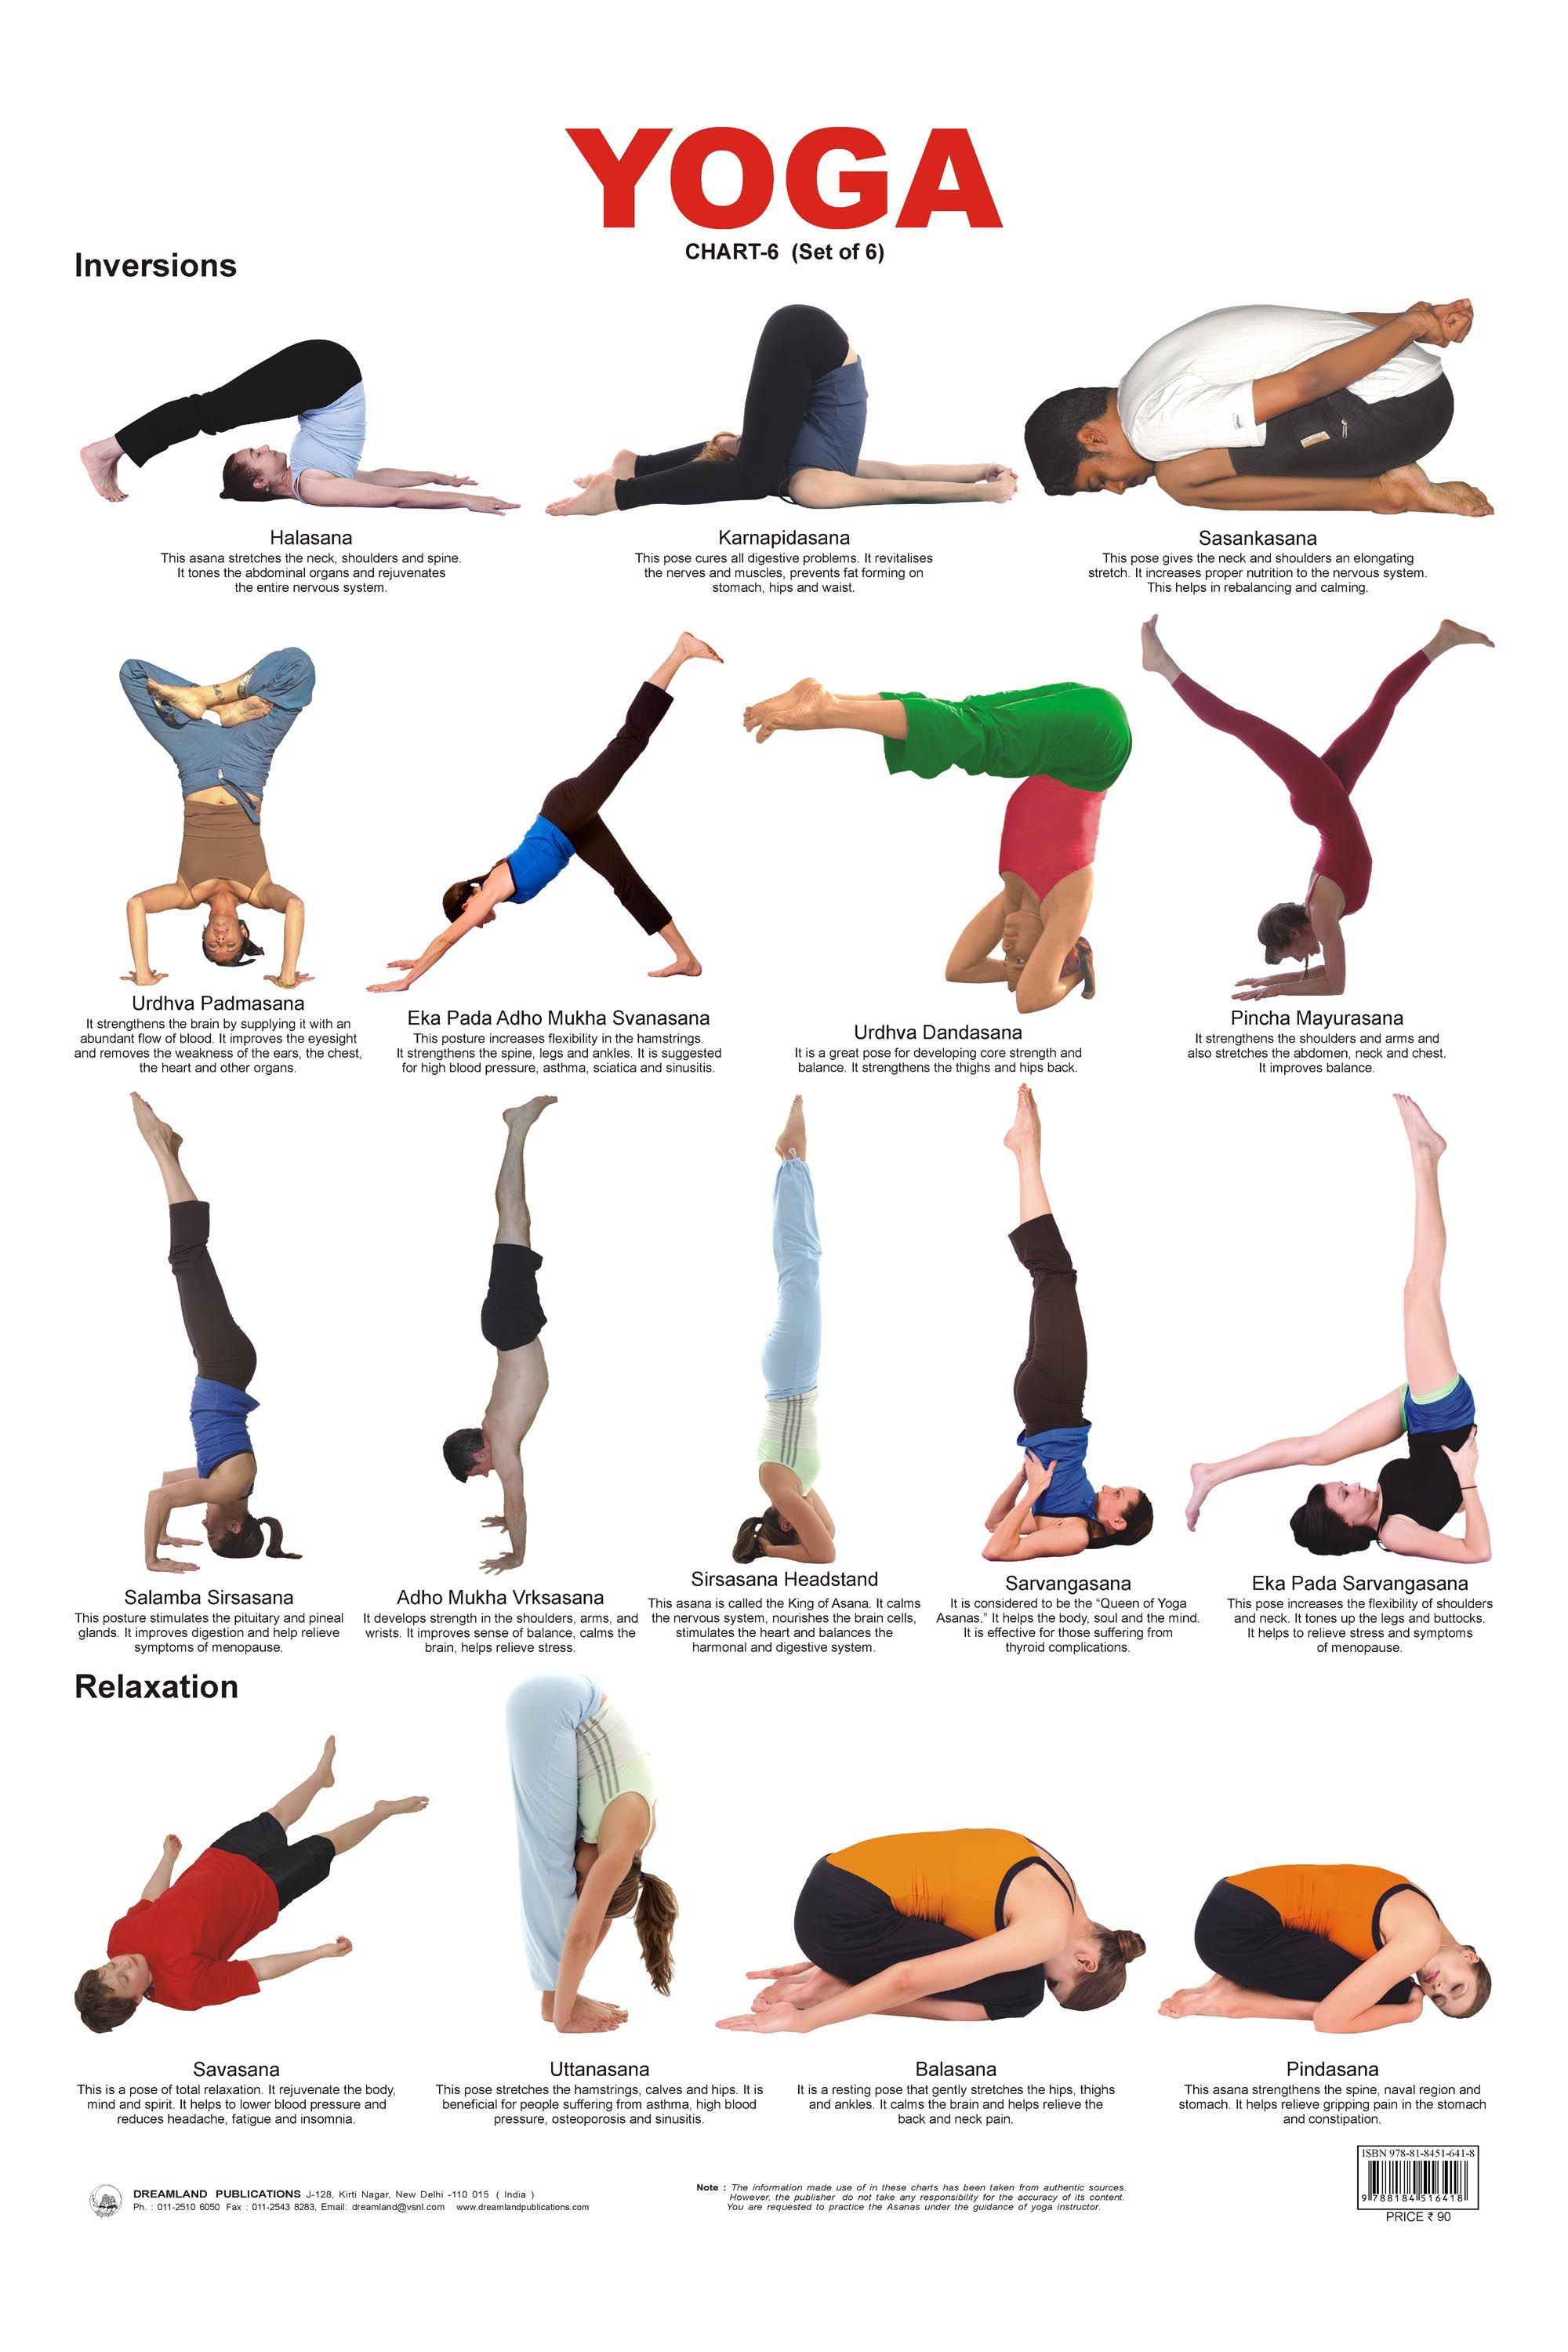 Yoga Inversions Chart And Their Benefits Yogahandstand Yogainversions